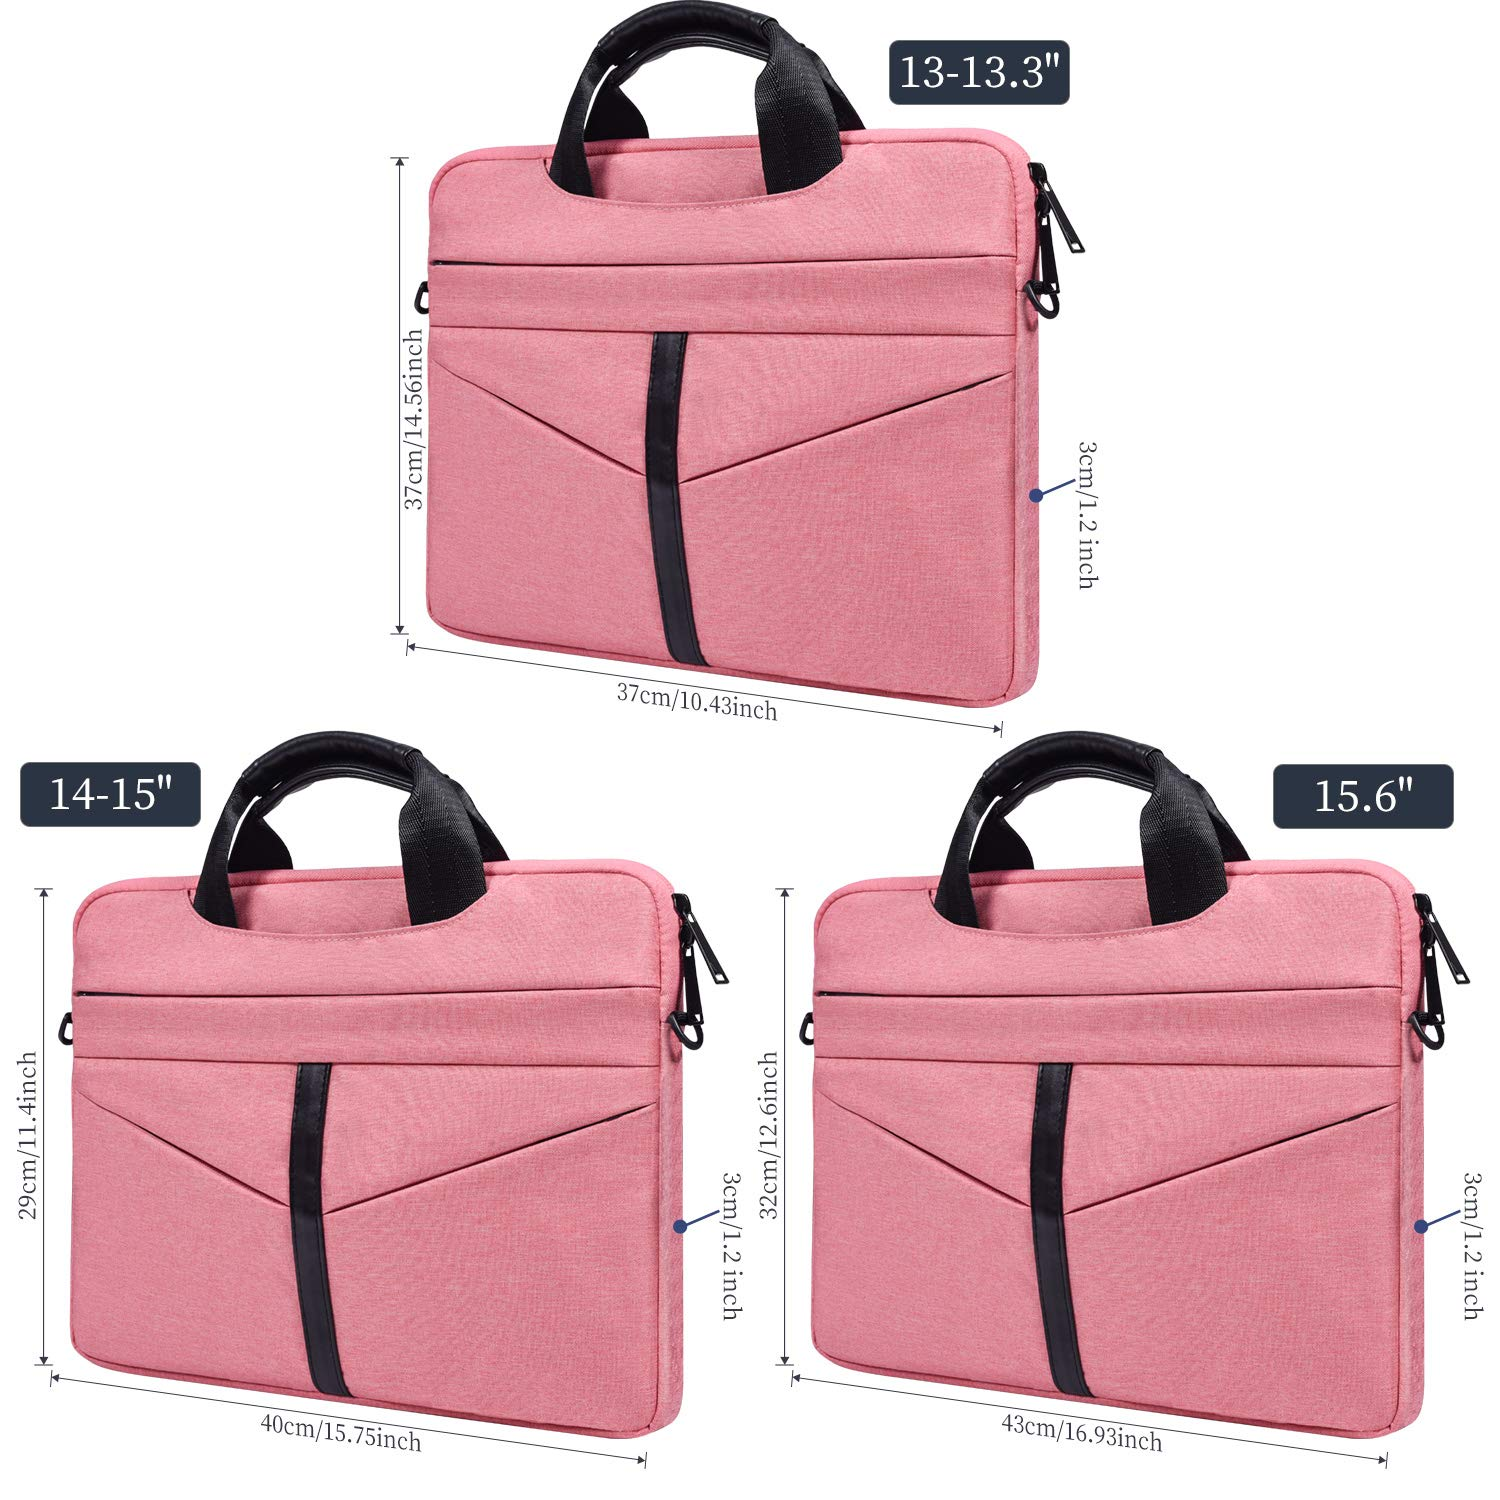 03b89dfc6b31 imComor 14-15 Inch Laptop Shoulder Bag Messenger Handbag Case Sleeve  Briefcase for MacBook Pro 15